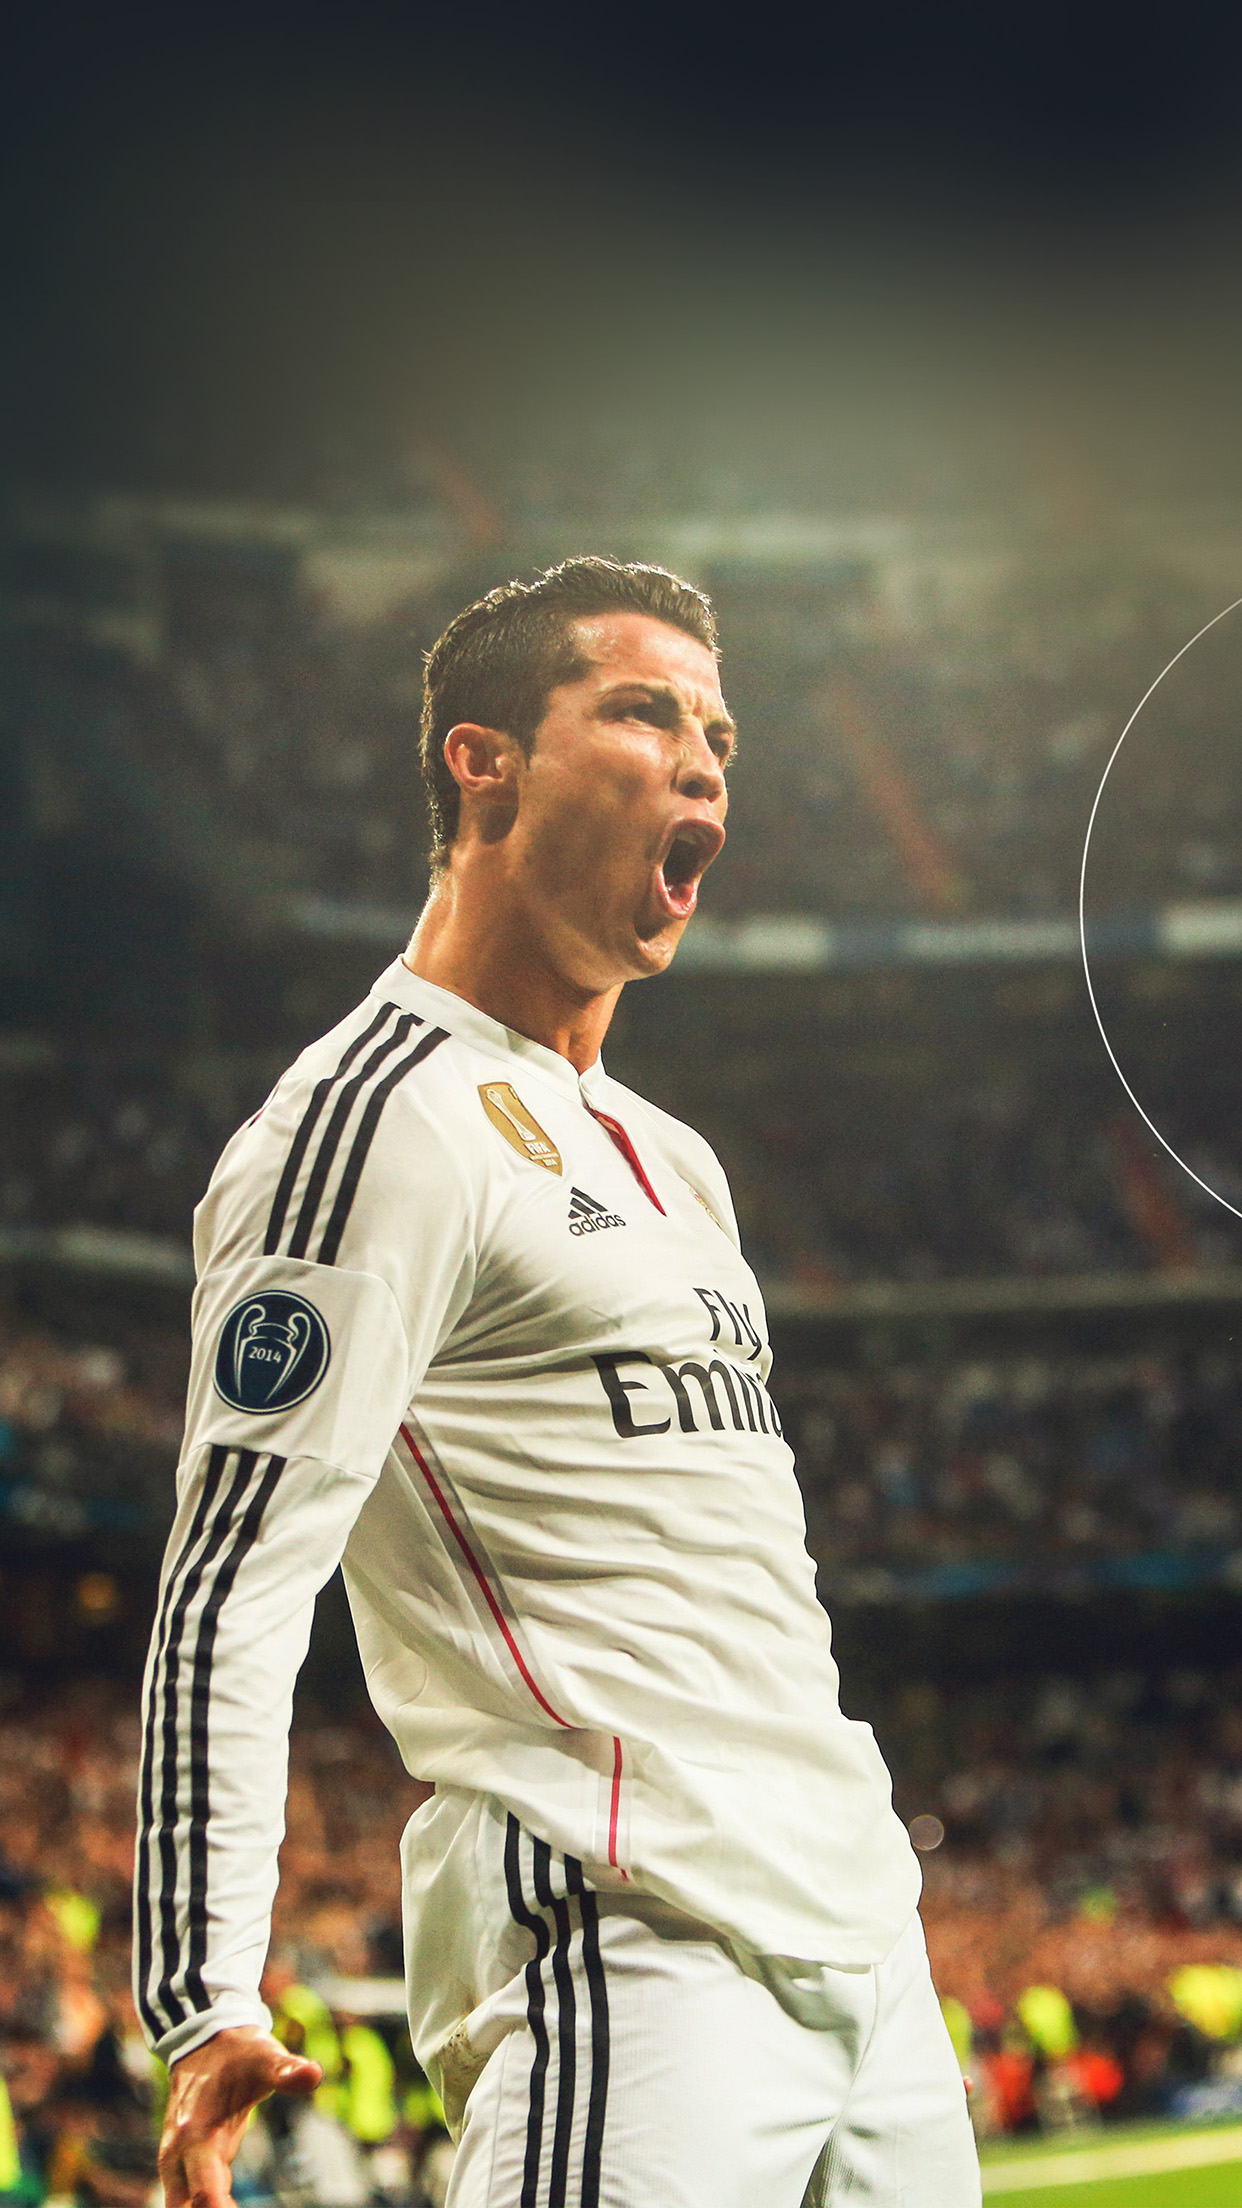 Iphone6paperscom Iphone 6 Wallpaper Hm08 Ronaldo Real